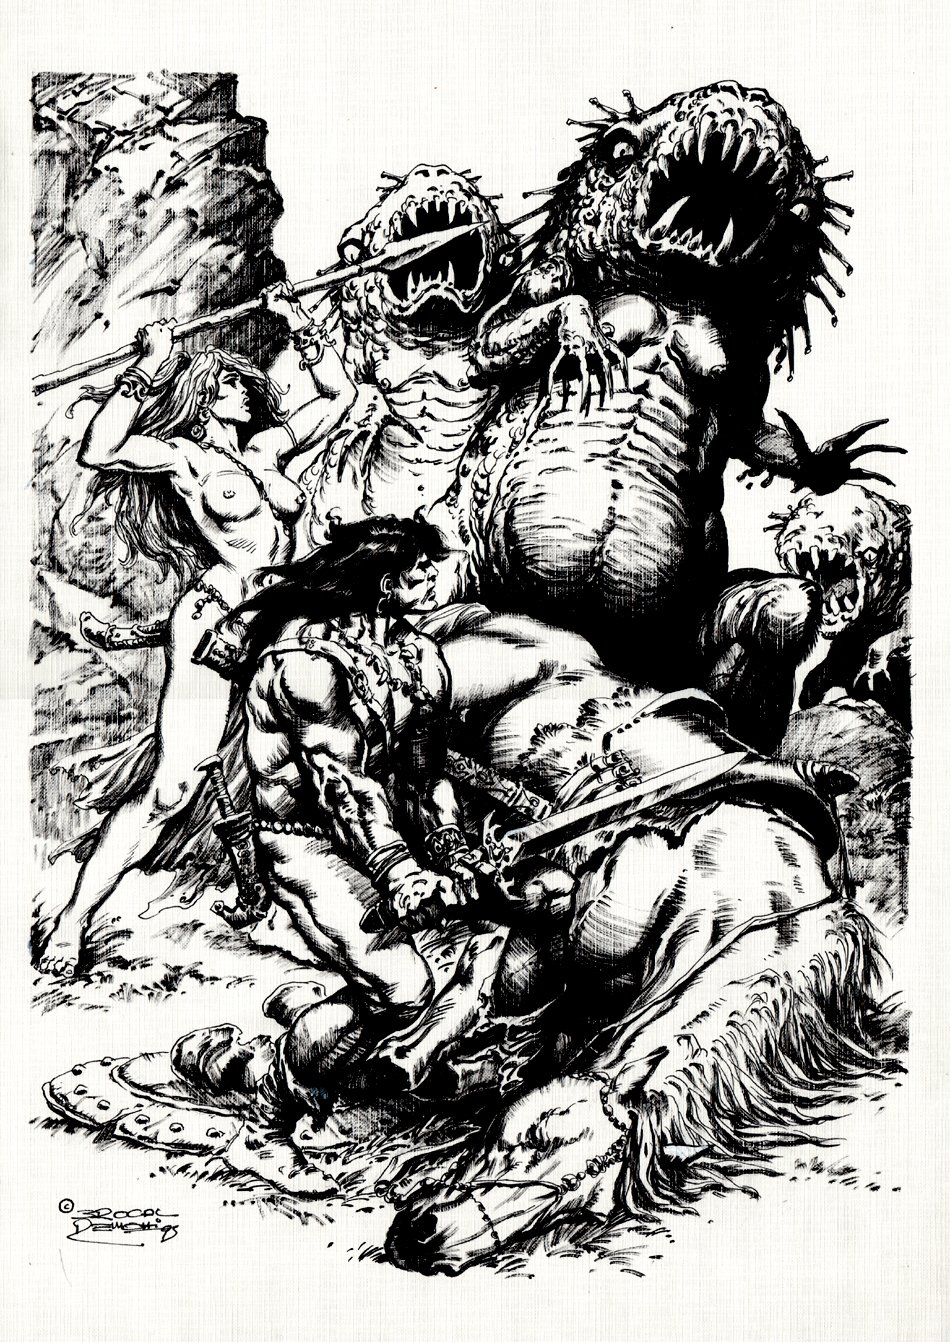 Kronan the Barbarian & Nude Babe Battle Giant Worm Monsters Pinup (Large Art) 1995